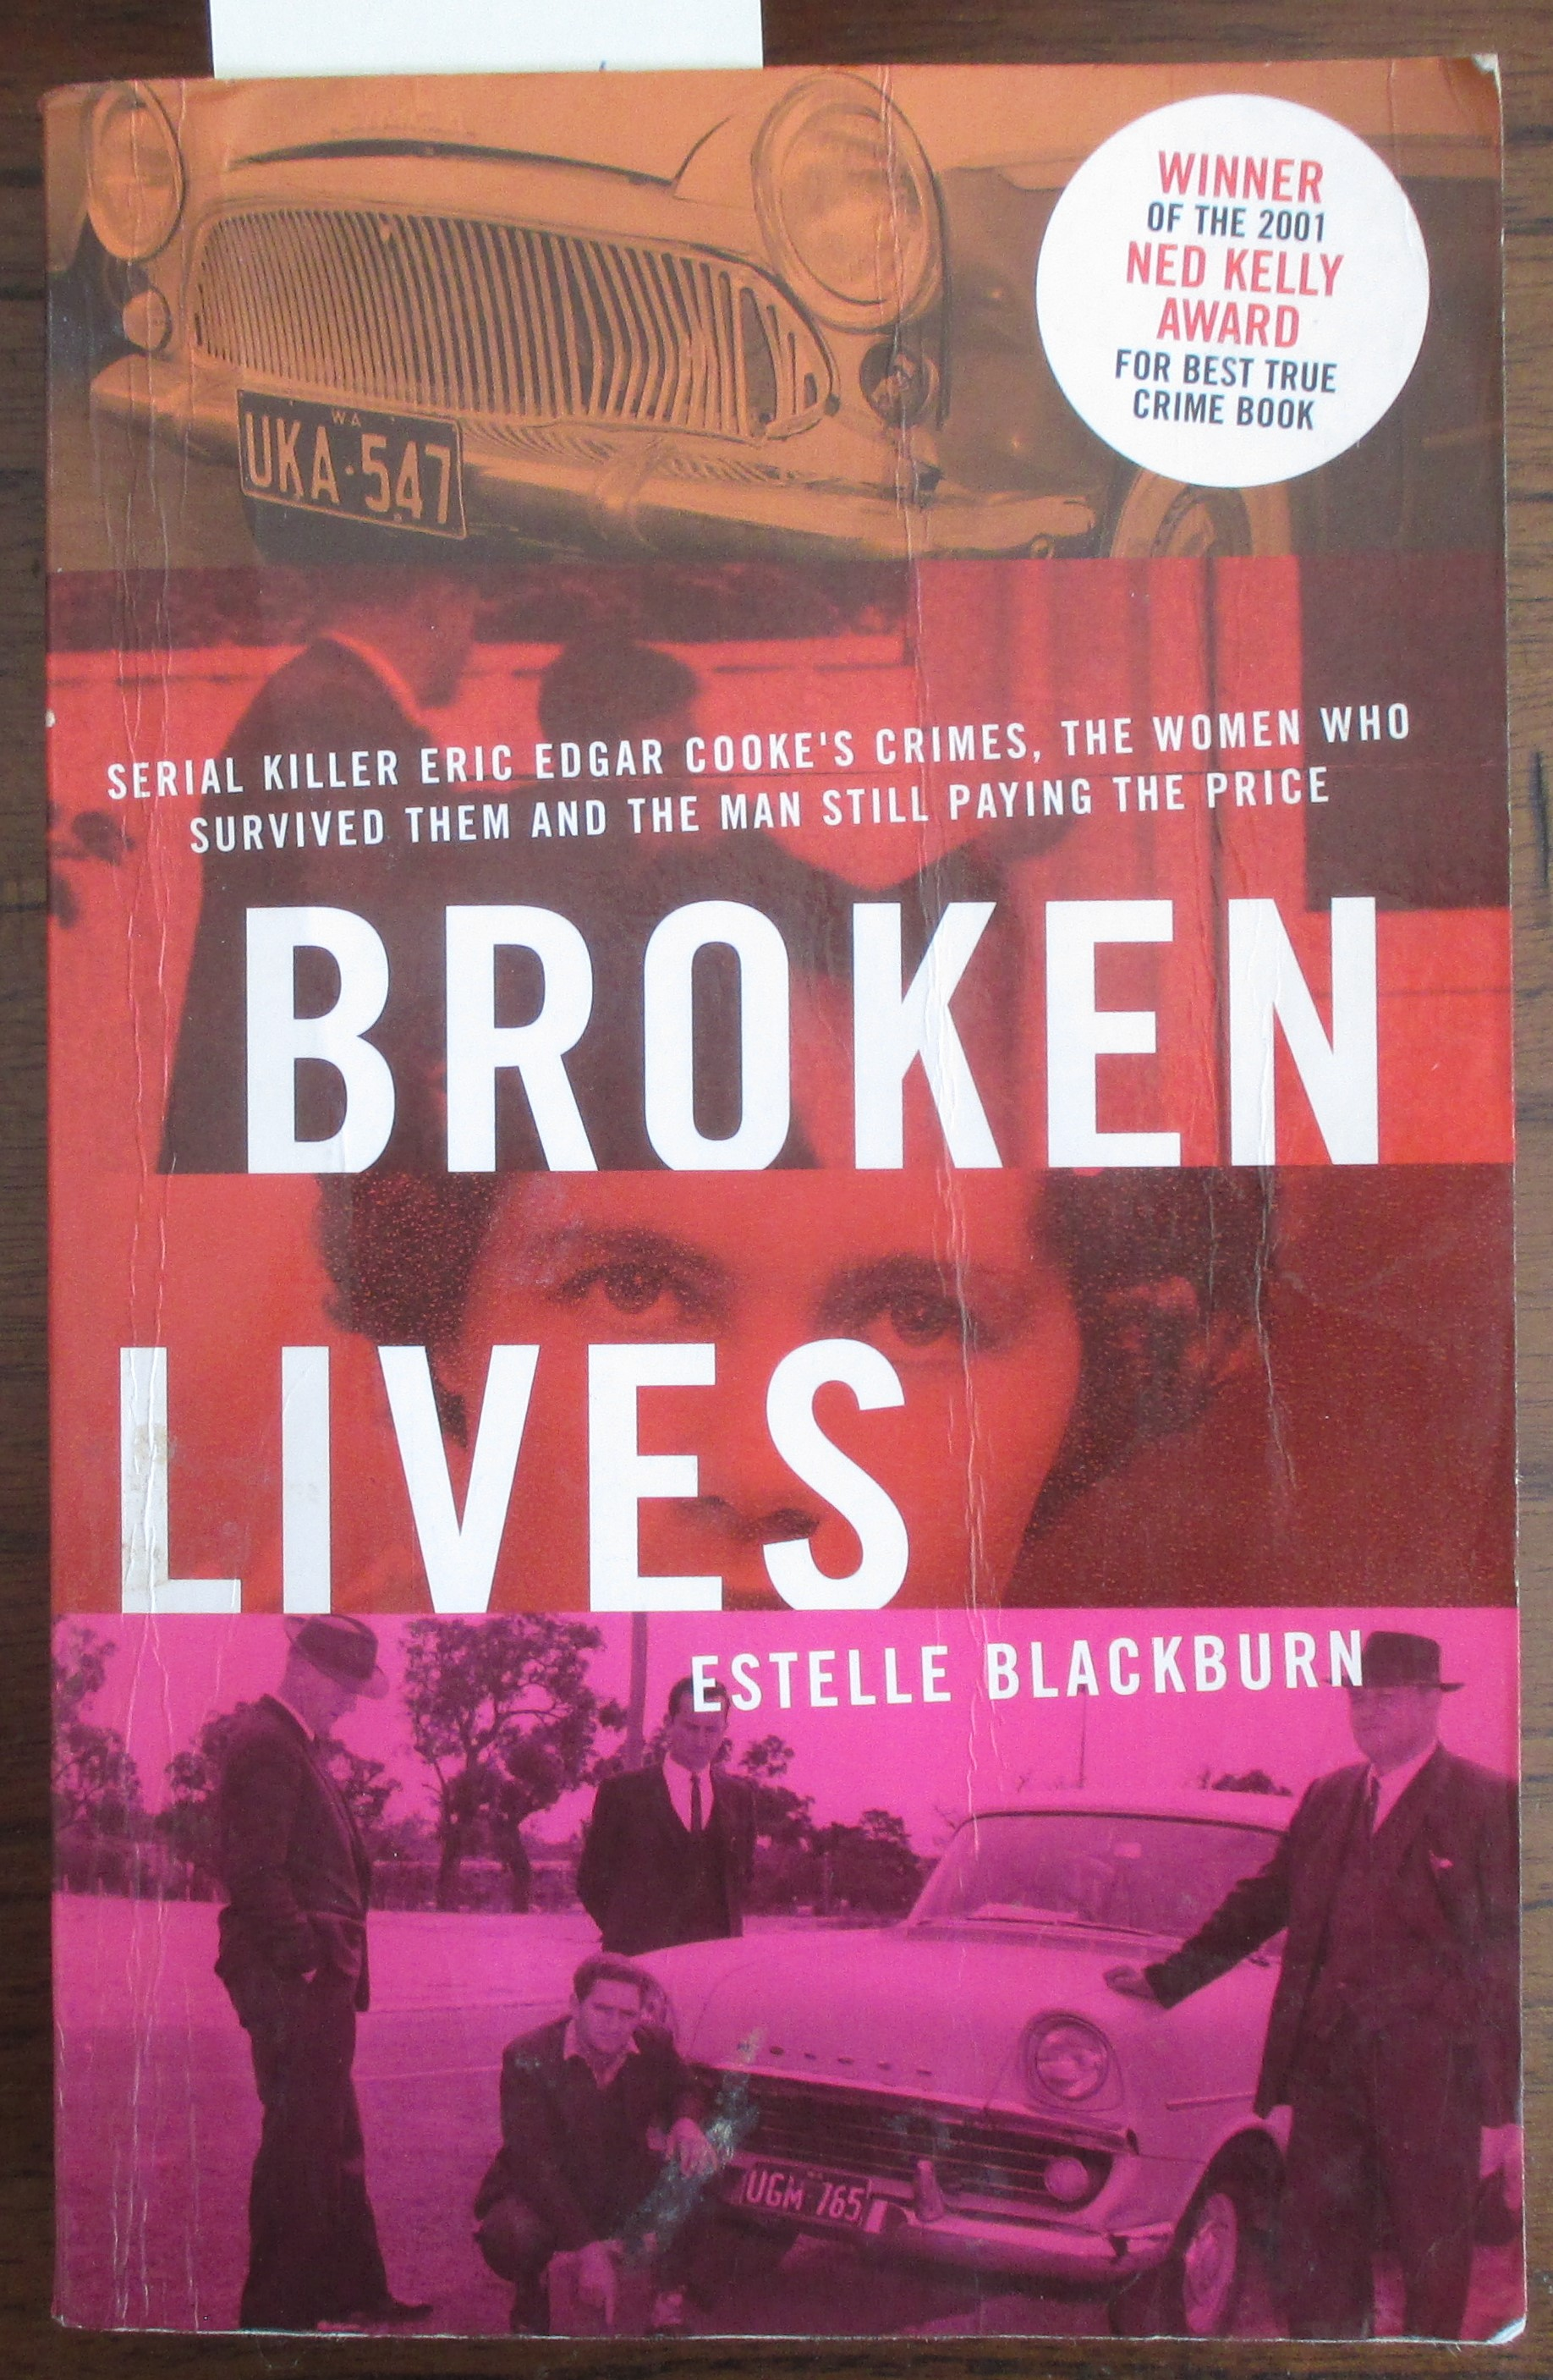 Image for Broken Lives: The Complete Life and Crimes of Serial Killer Eric Edgar Cooke